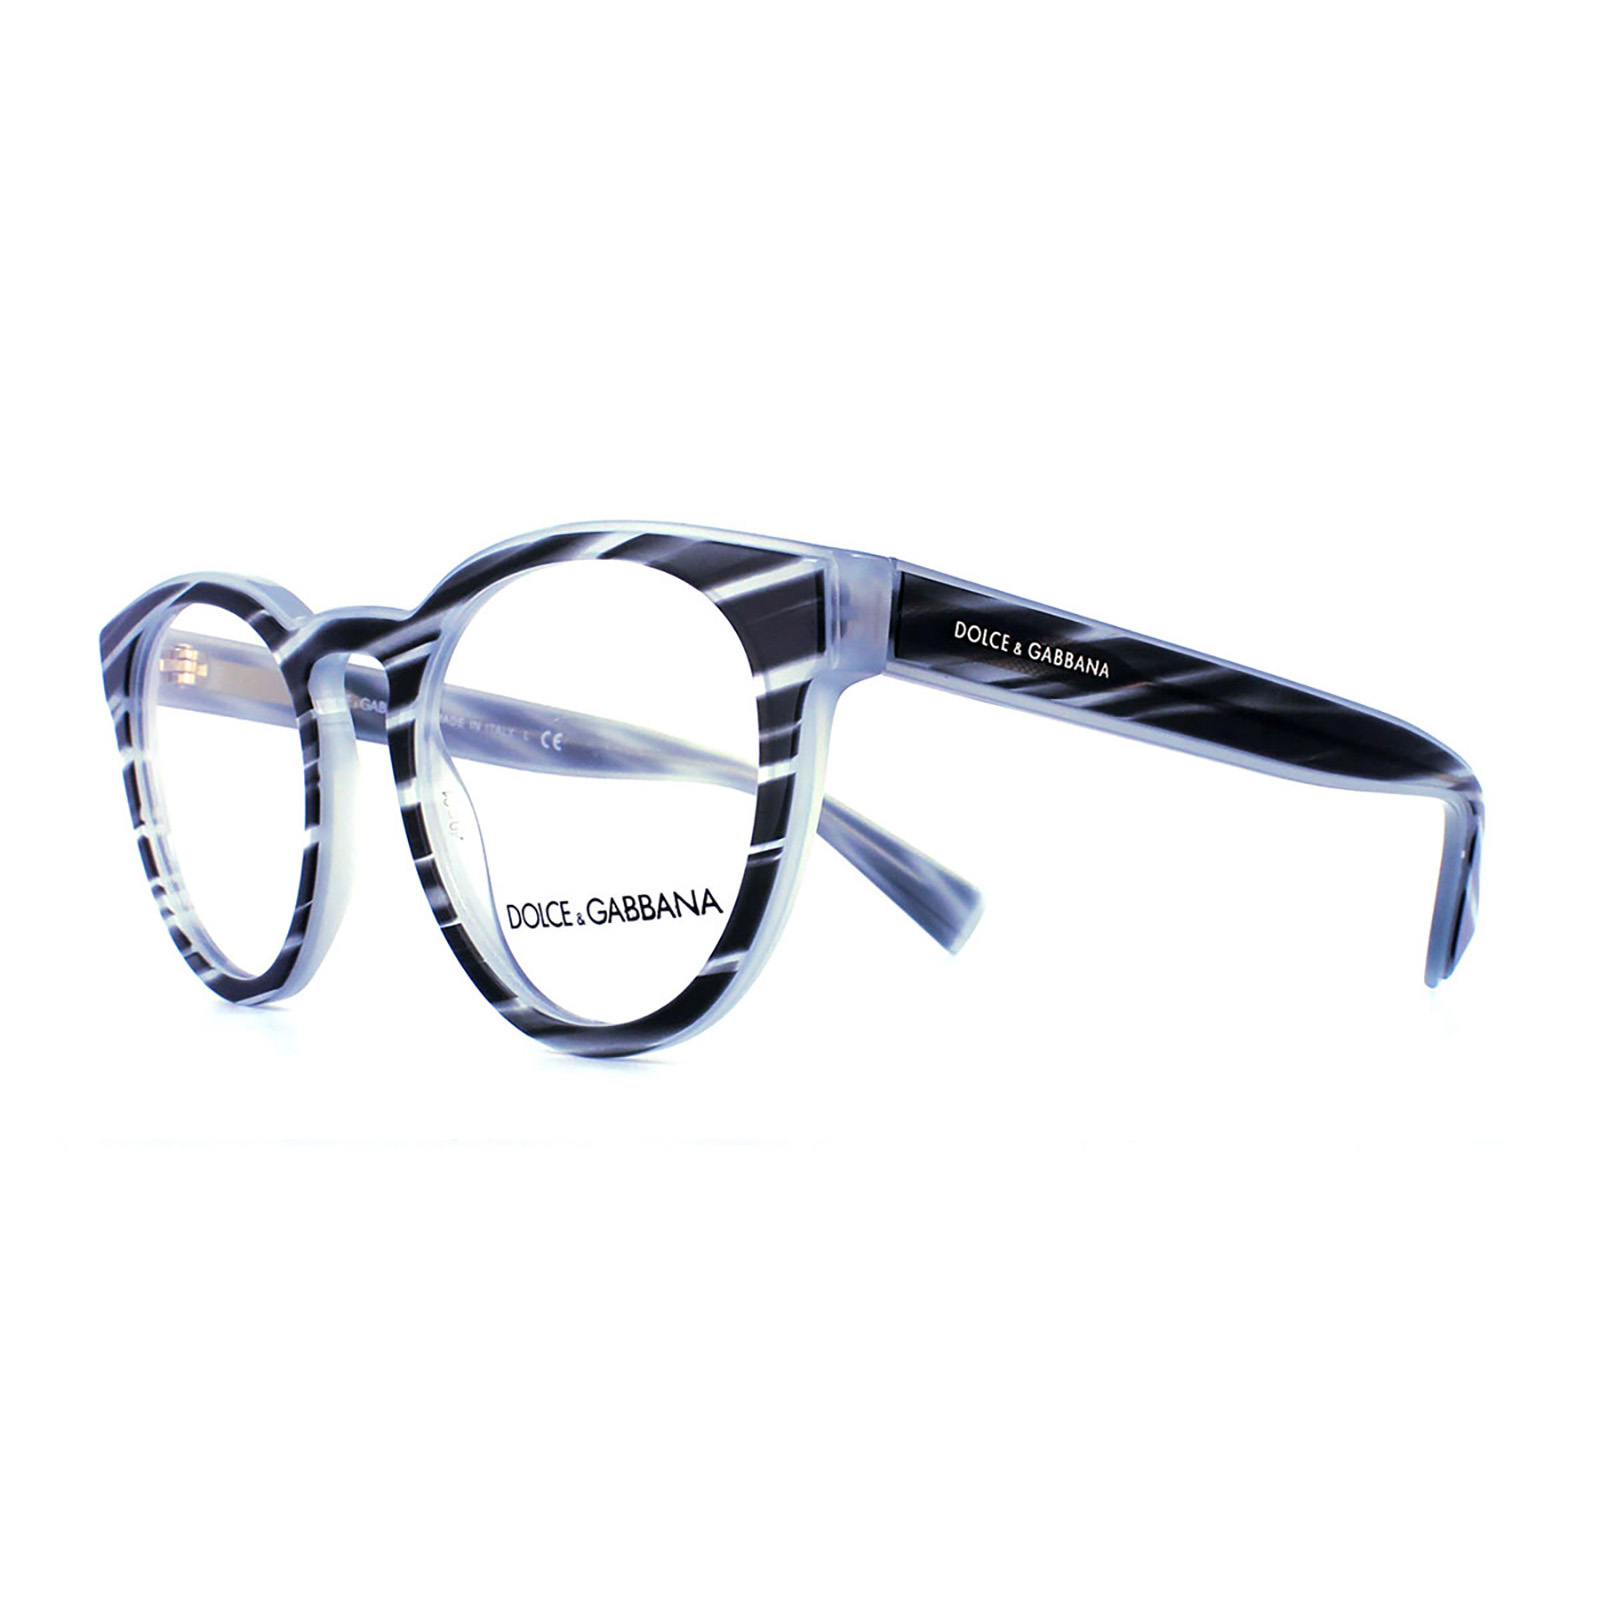 Cheap Dolce and Gabbana 3251 Glasses Frames - Discounted Sunglasses